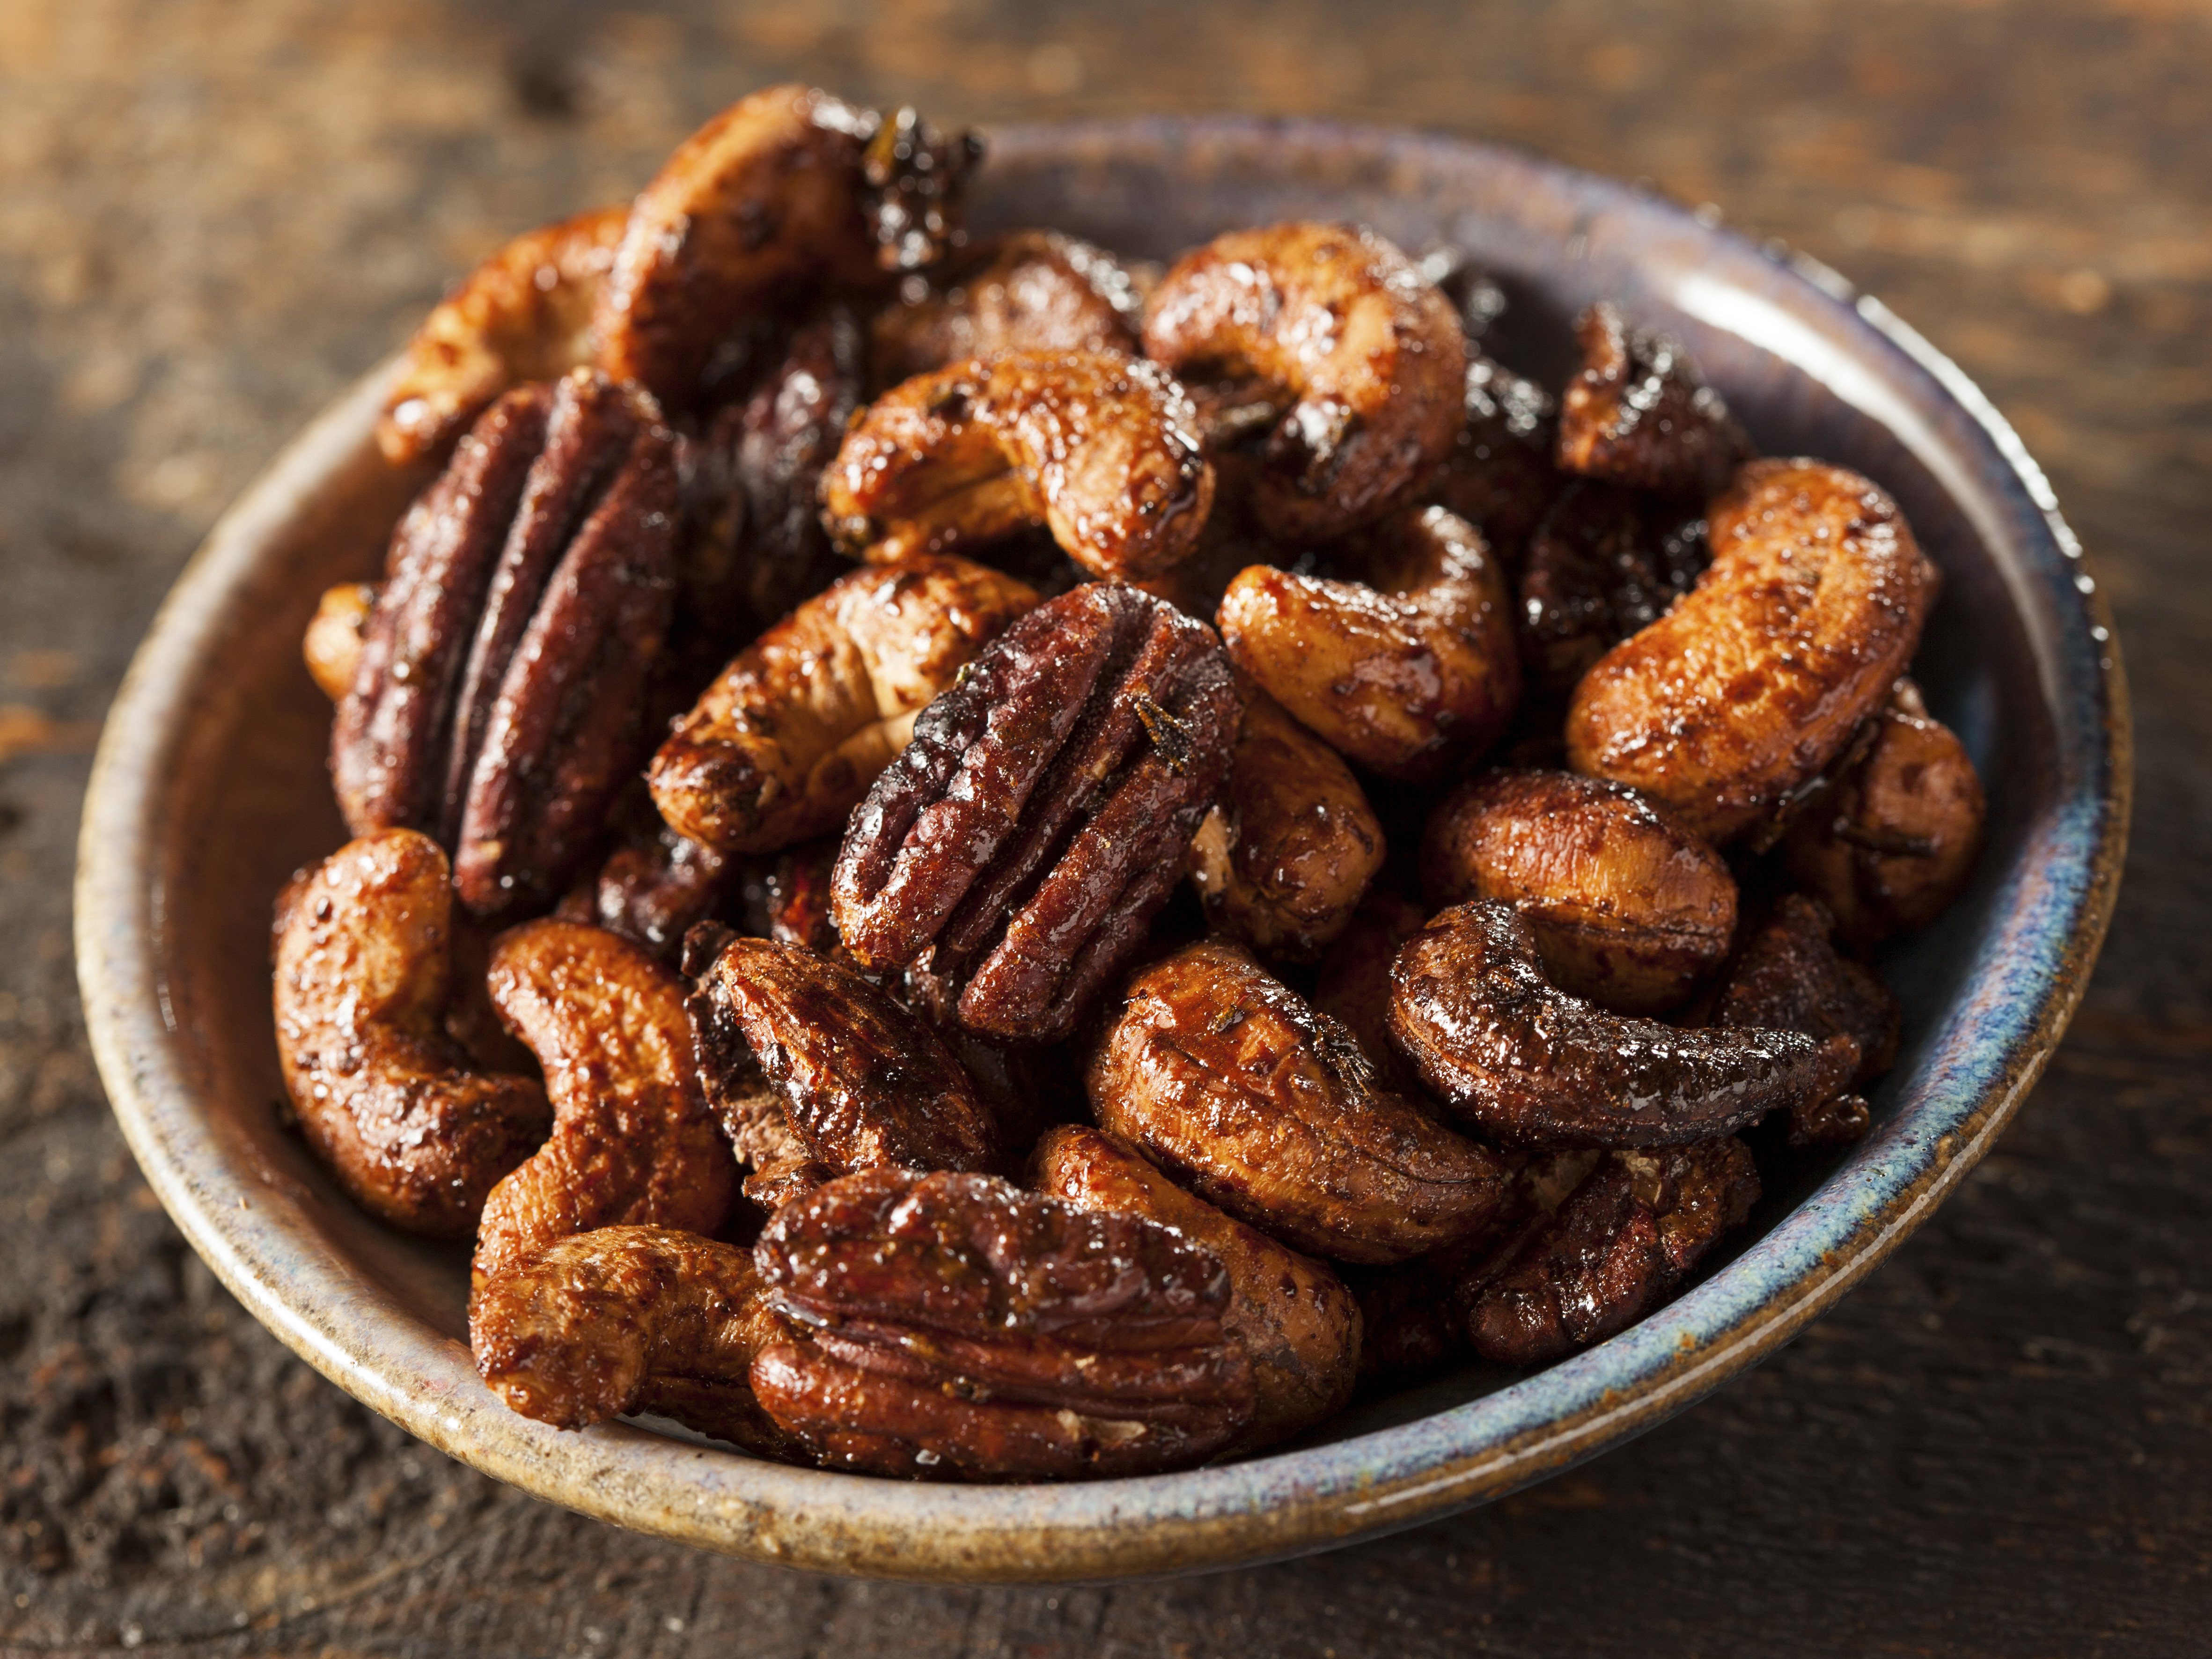 ... the kitchen with Kelley: Slow cooker honey-glazed nuts with cinnamon